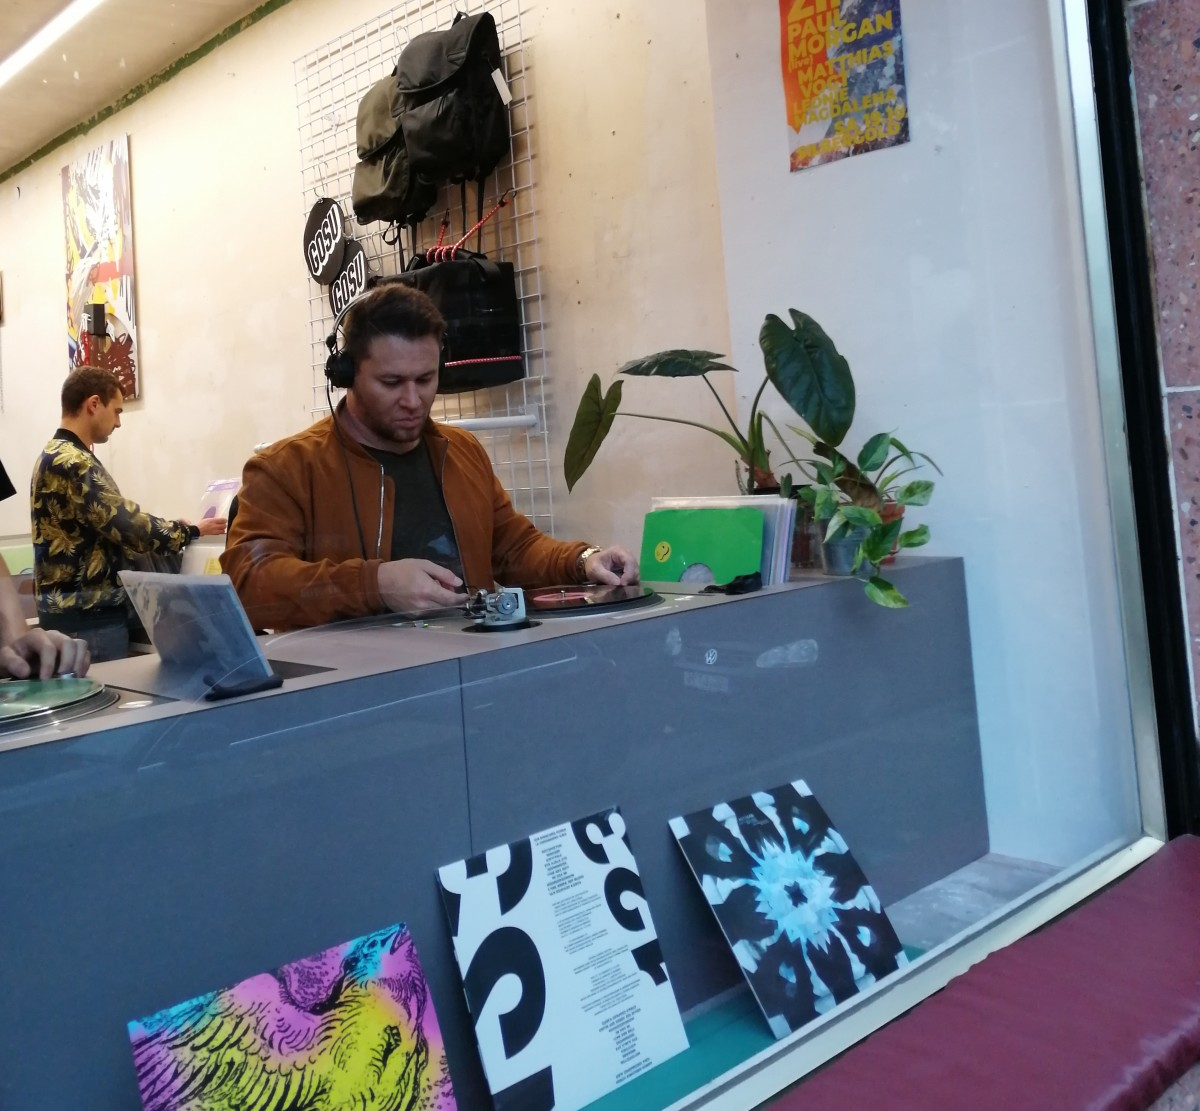 C-Vogt-Record Store